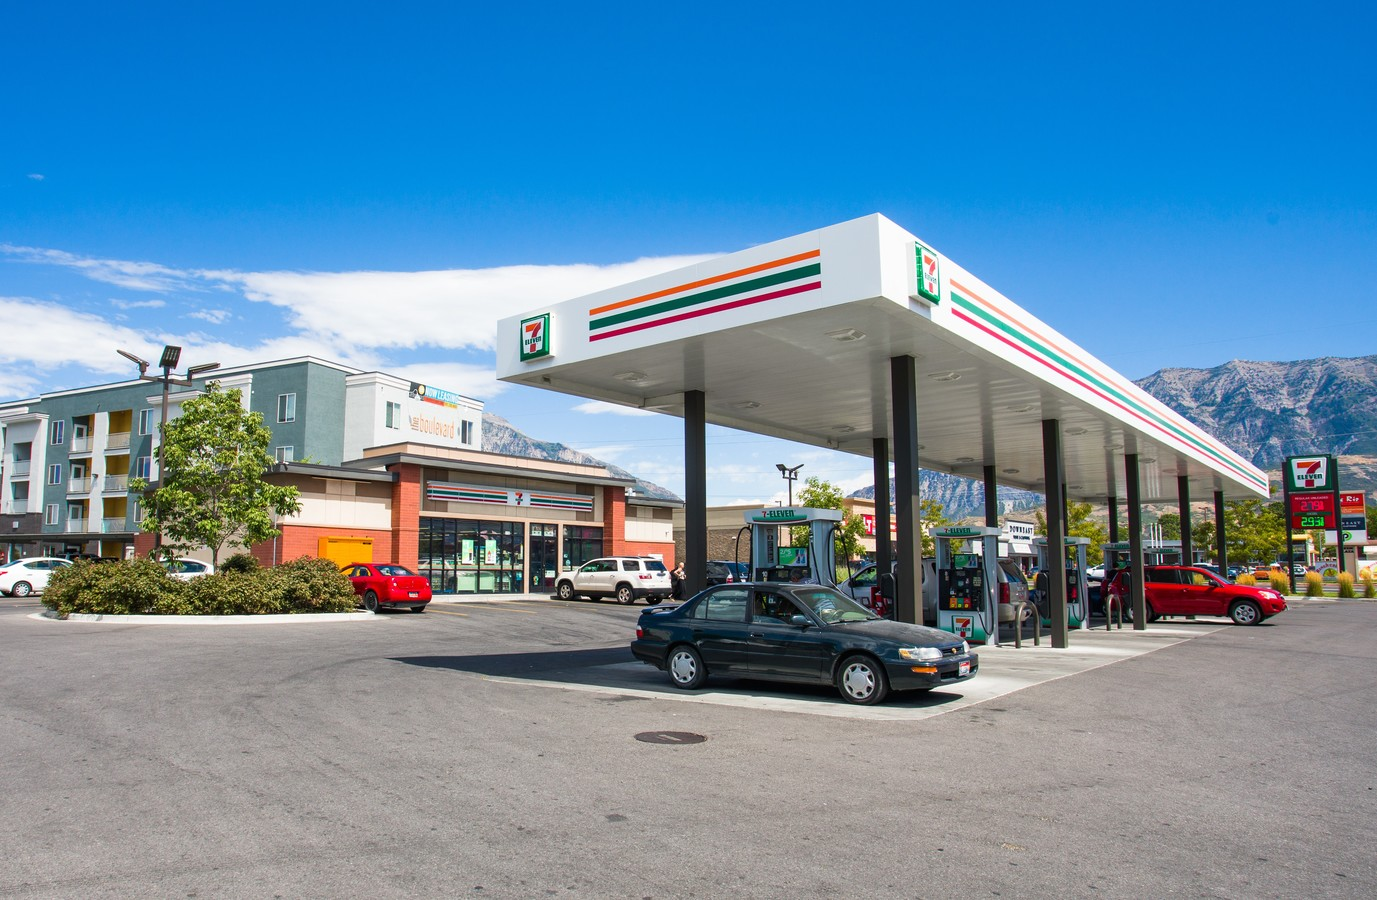 7-Eleven – West Haven, UT